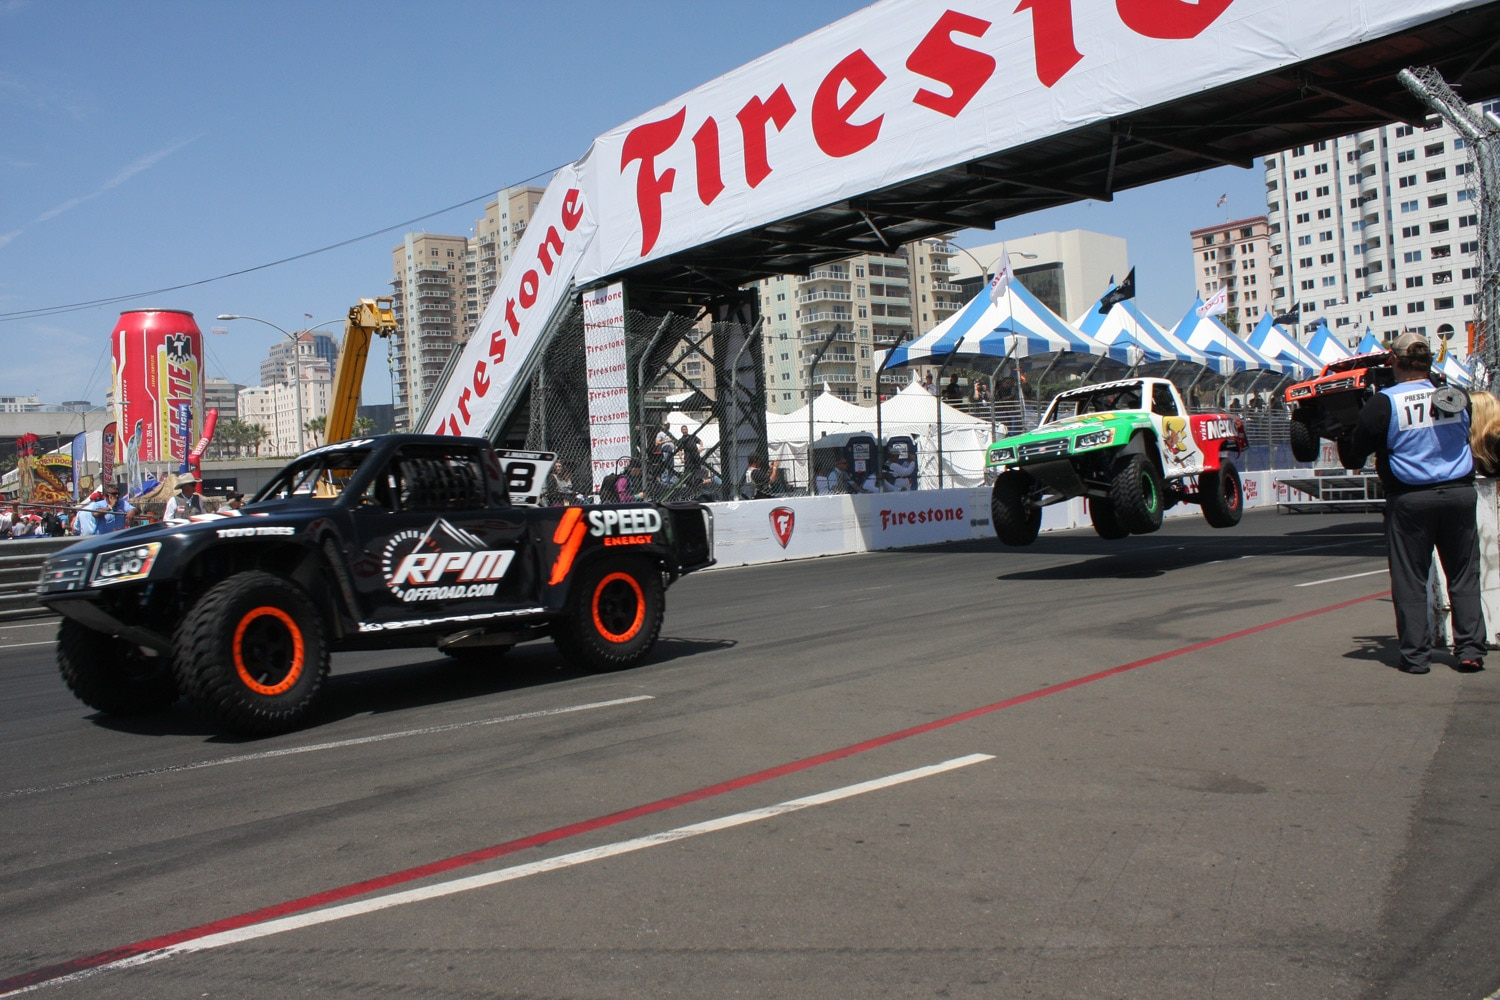 1304OR 10+Robby Gordon SST Stadium Super Trucks 2013 Long Beach Grand Prix Lalo Laguna